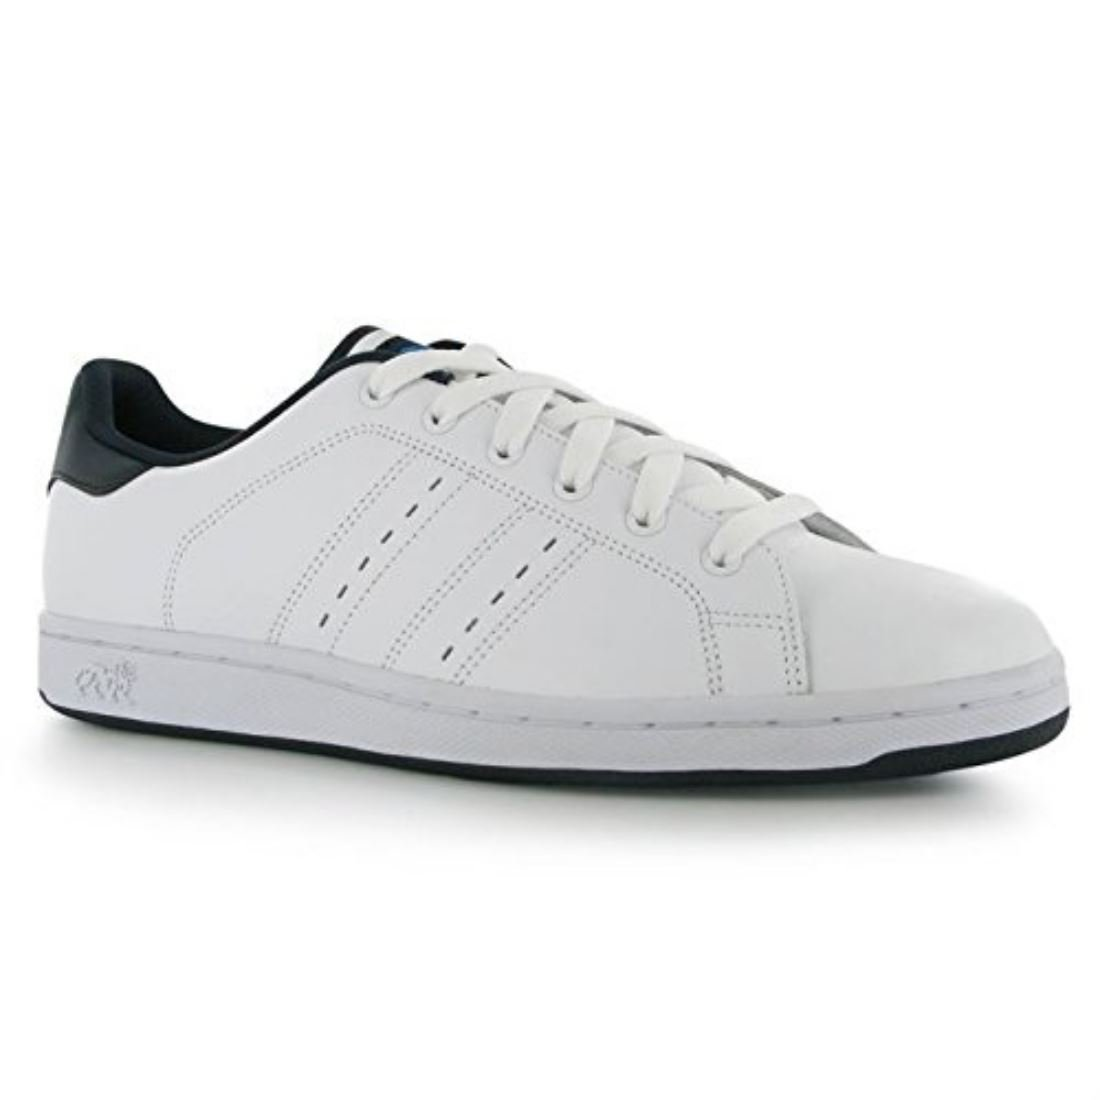 Lonsdale Mens Leyton Leather Trainers Full Lace Up Sport Casual Shoes UK 9